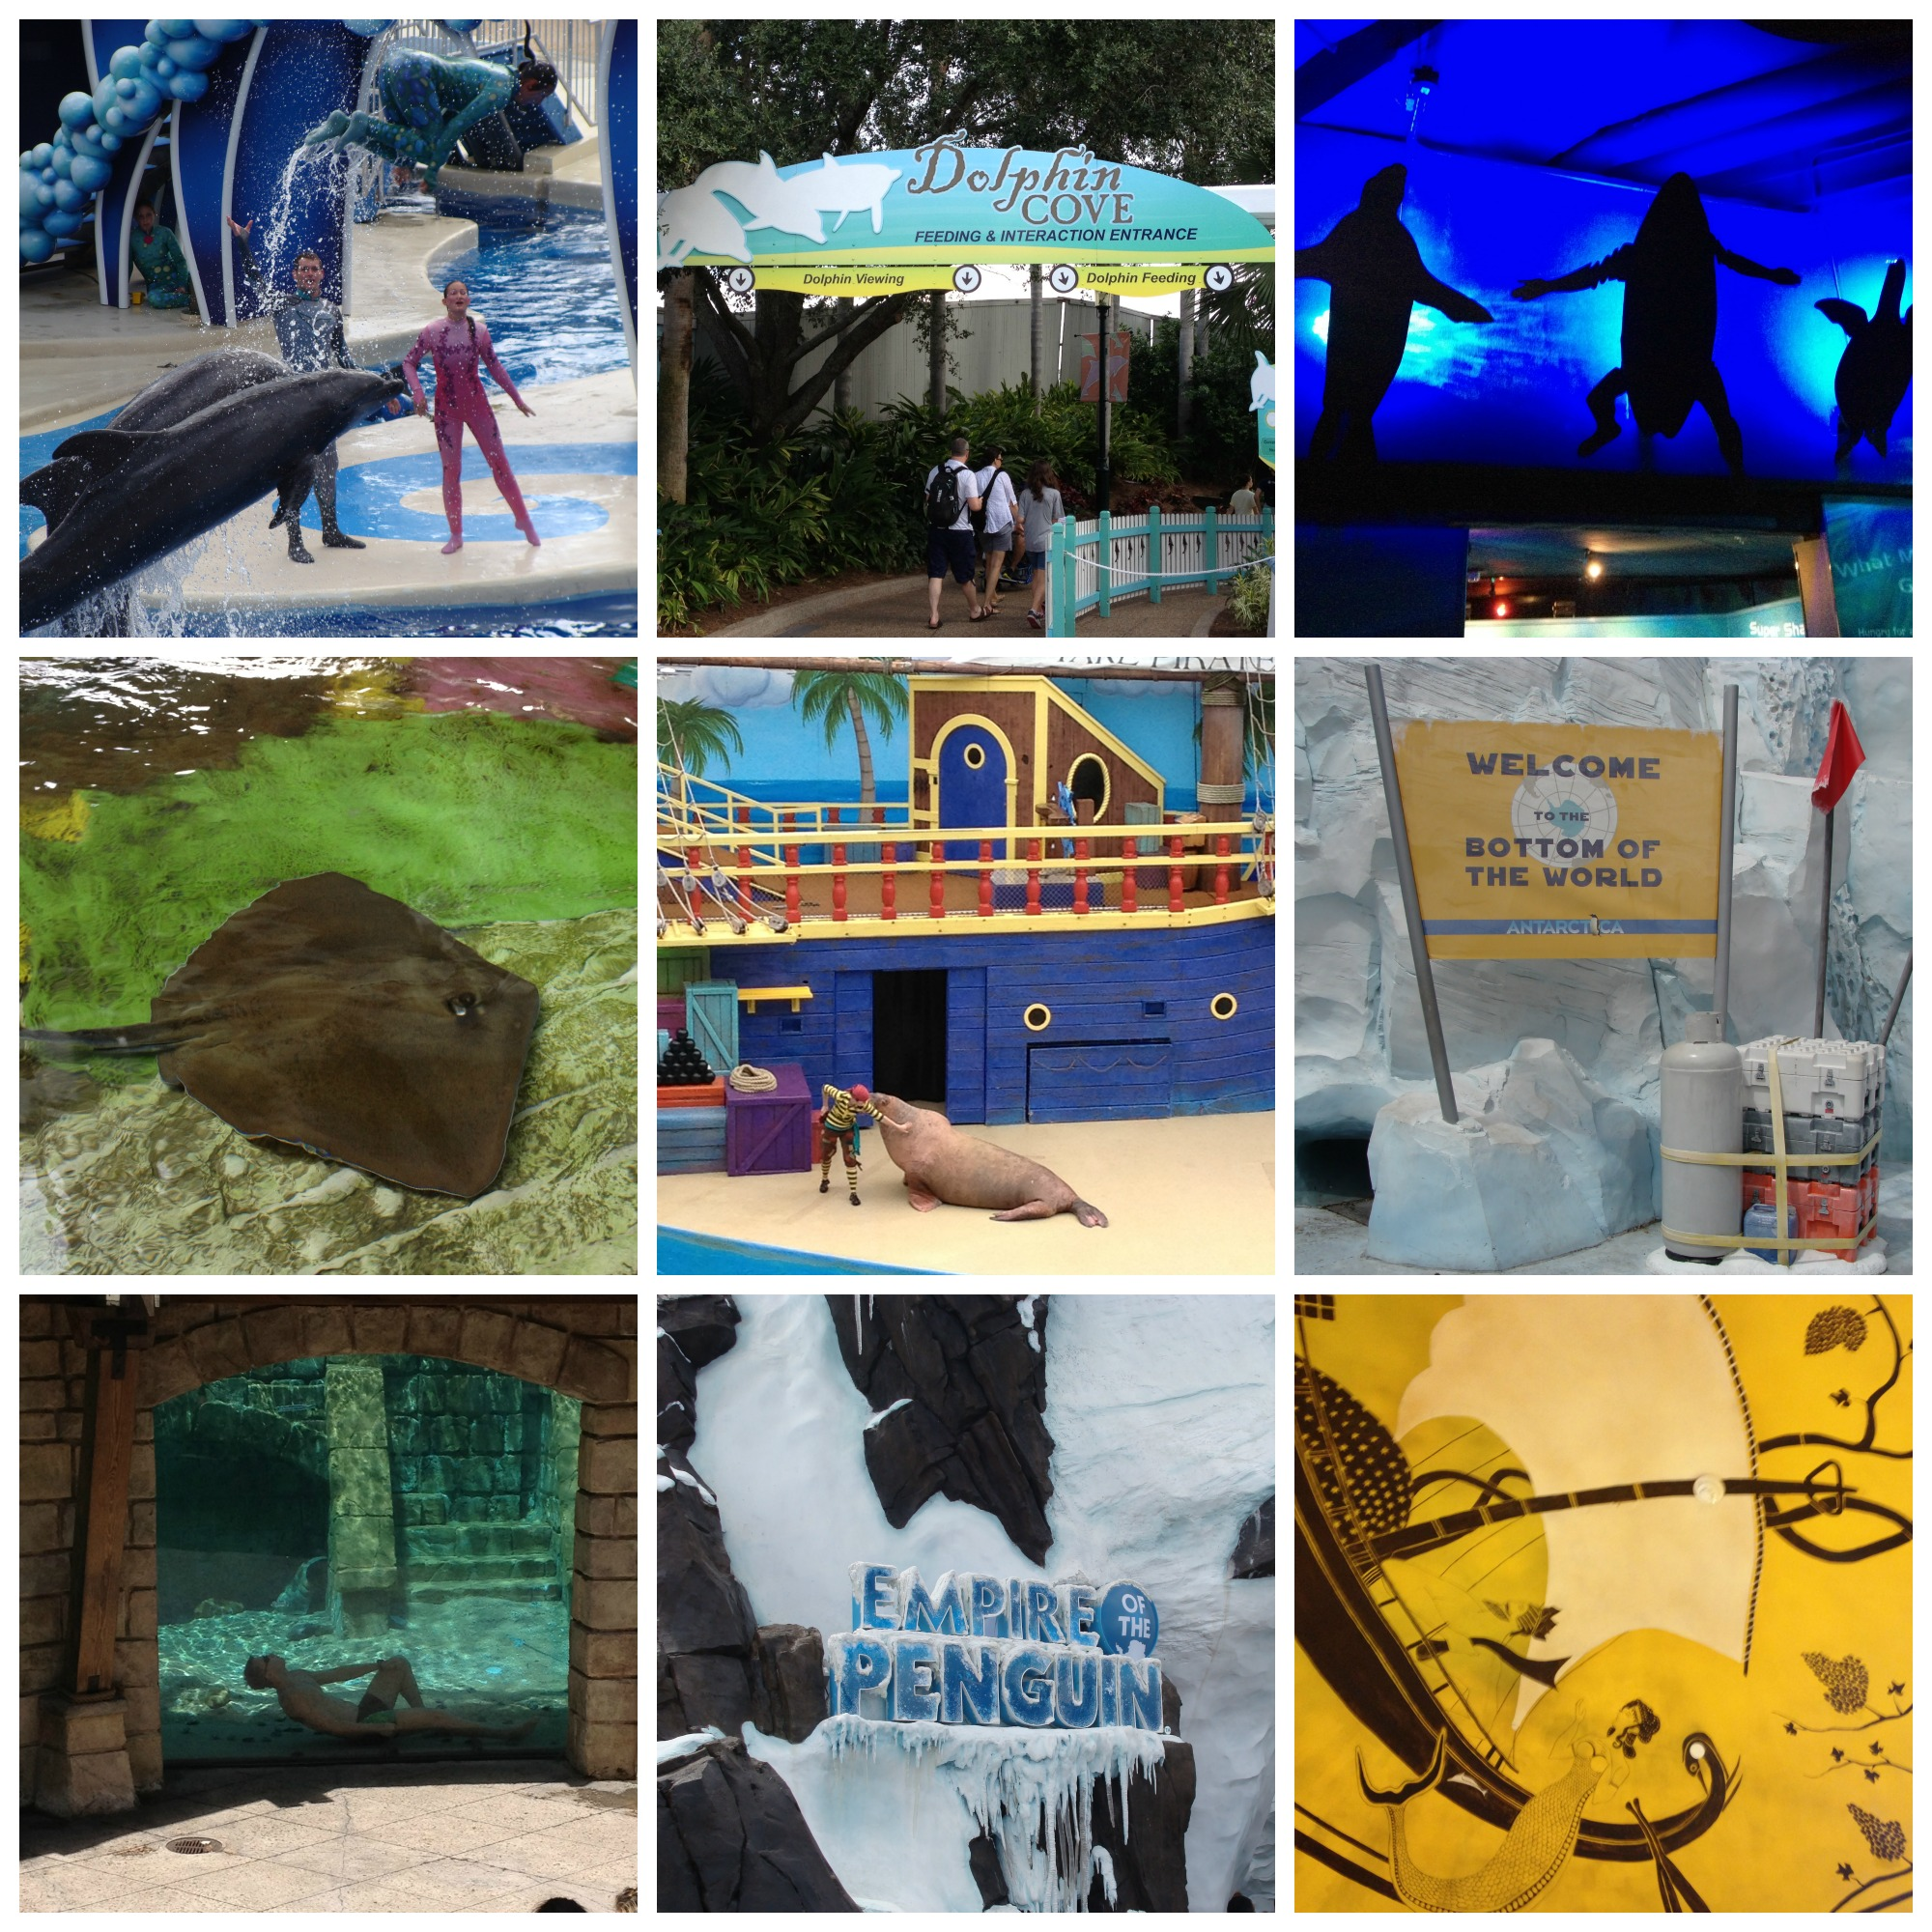 Sea World Orlando Theme Park #VisitOrlando